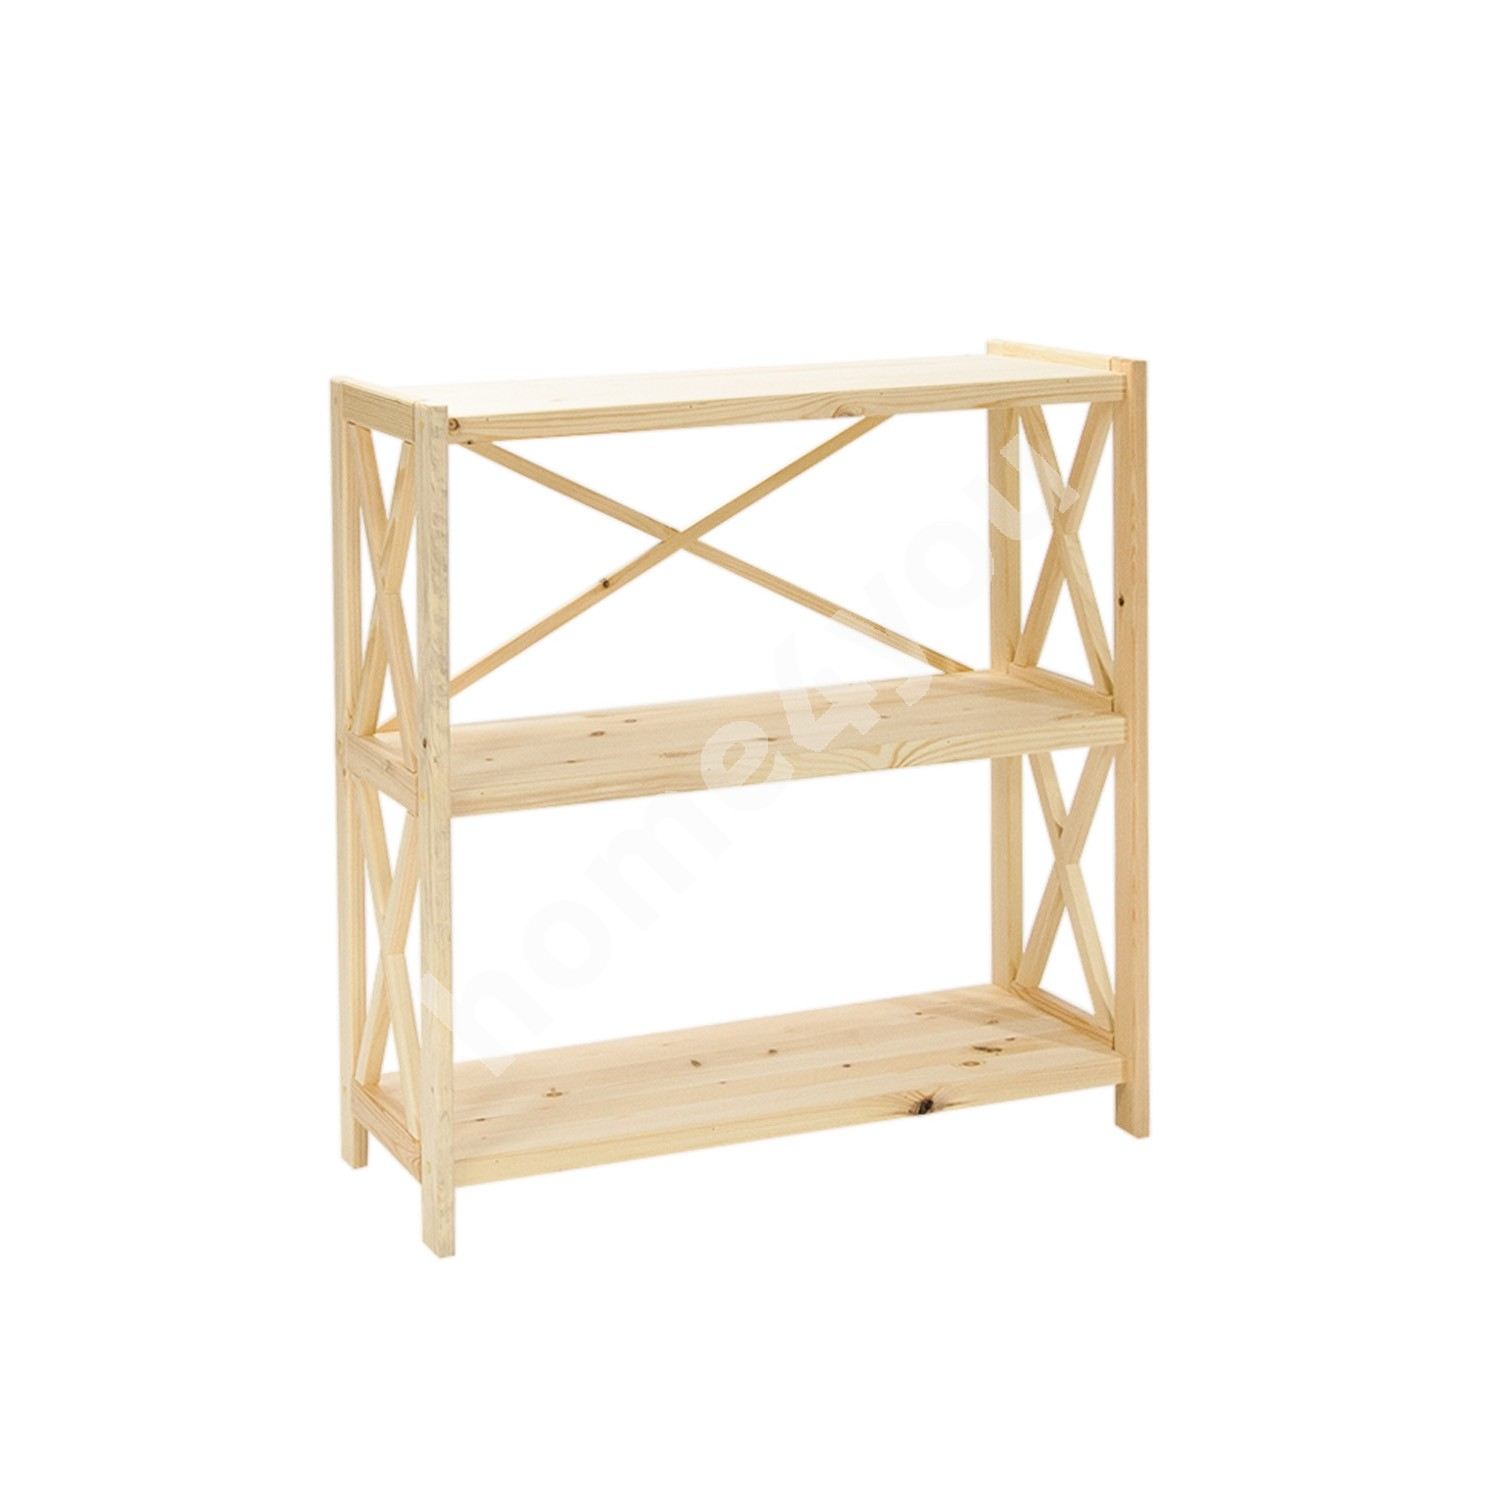 Shelf ALEX 3-tier, 80x31xH86cm, wood: pine, color: natural